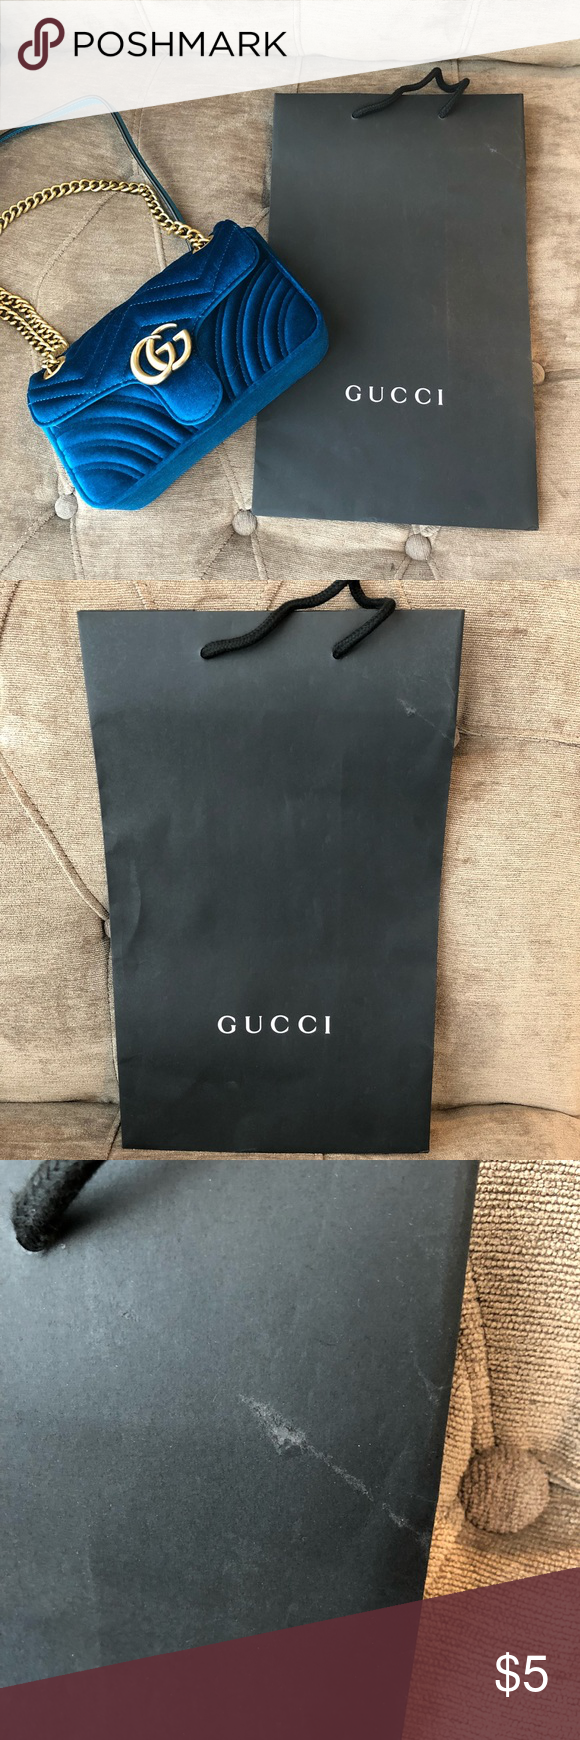 "f8b54d634e7 Authentic Gucci Paper Bag Medium Size Authentic Gucci Paper Bag Medium  Size. 15""x9"